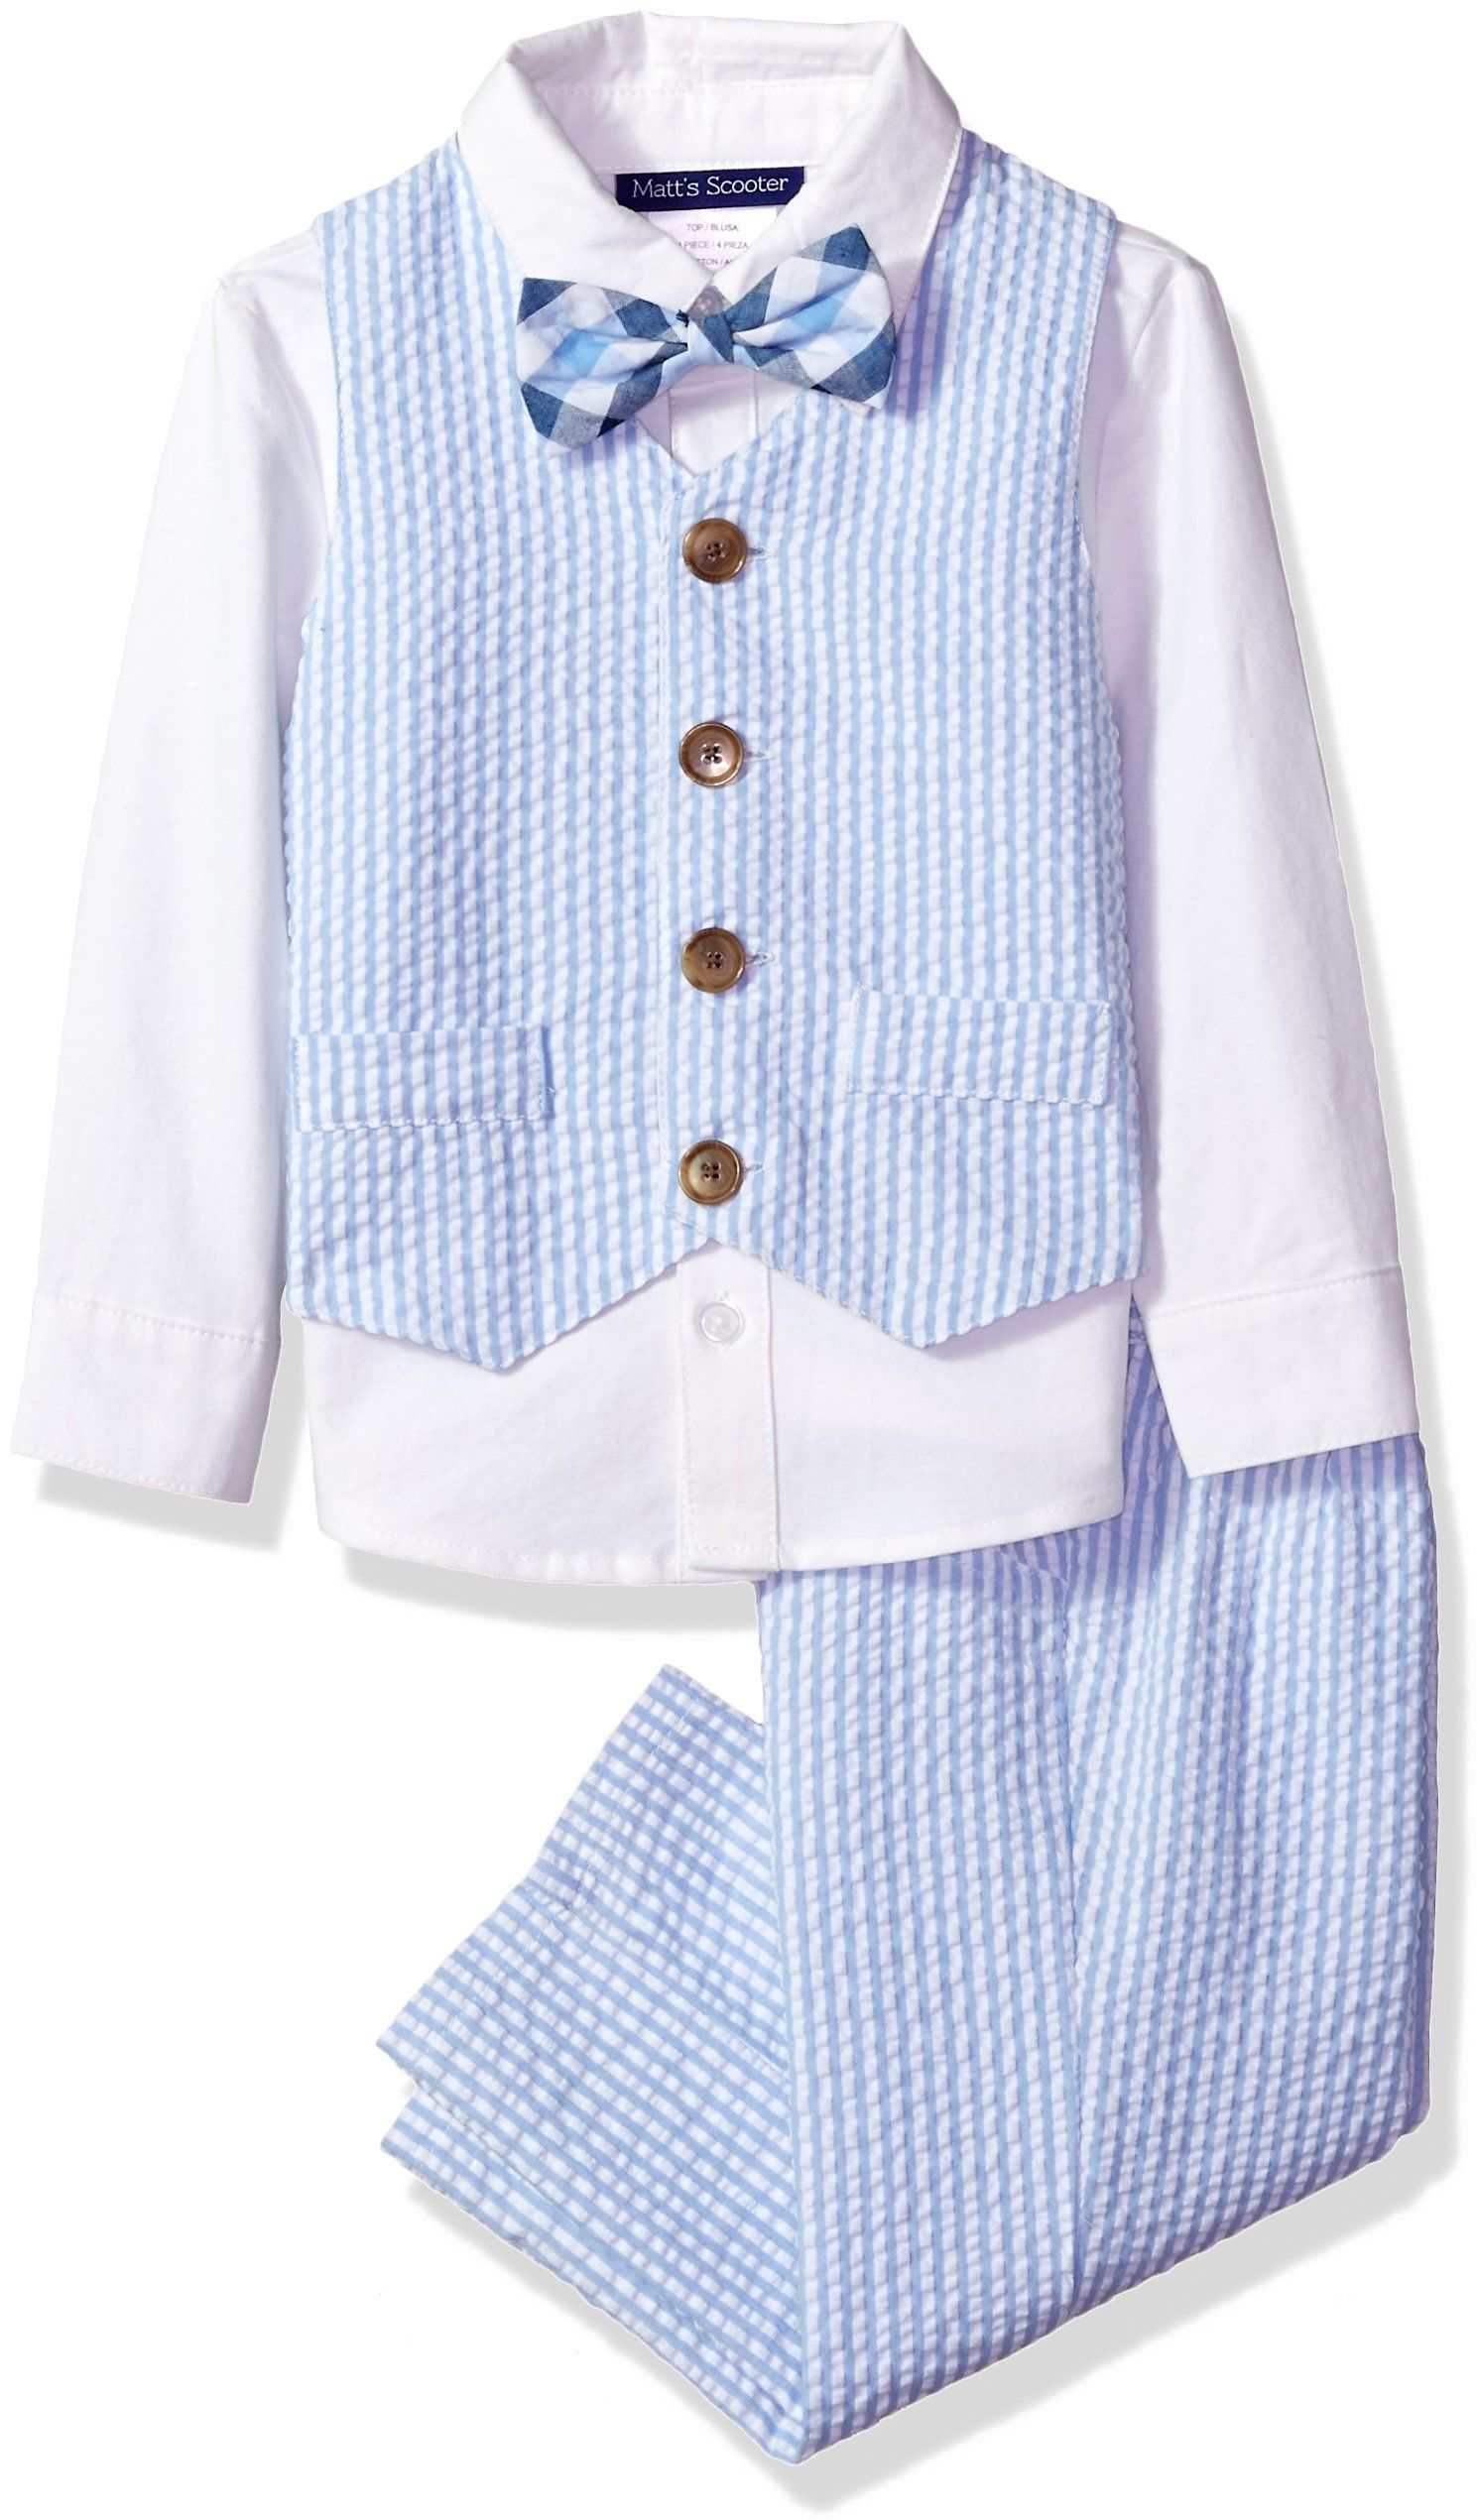 Bonnie Baby Baby Matts Scooter Boy`s Coverall